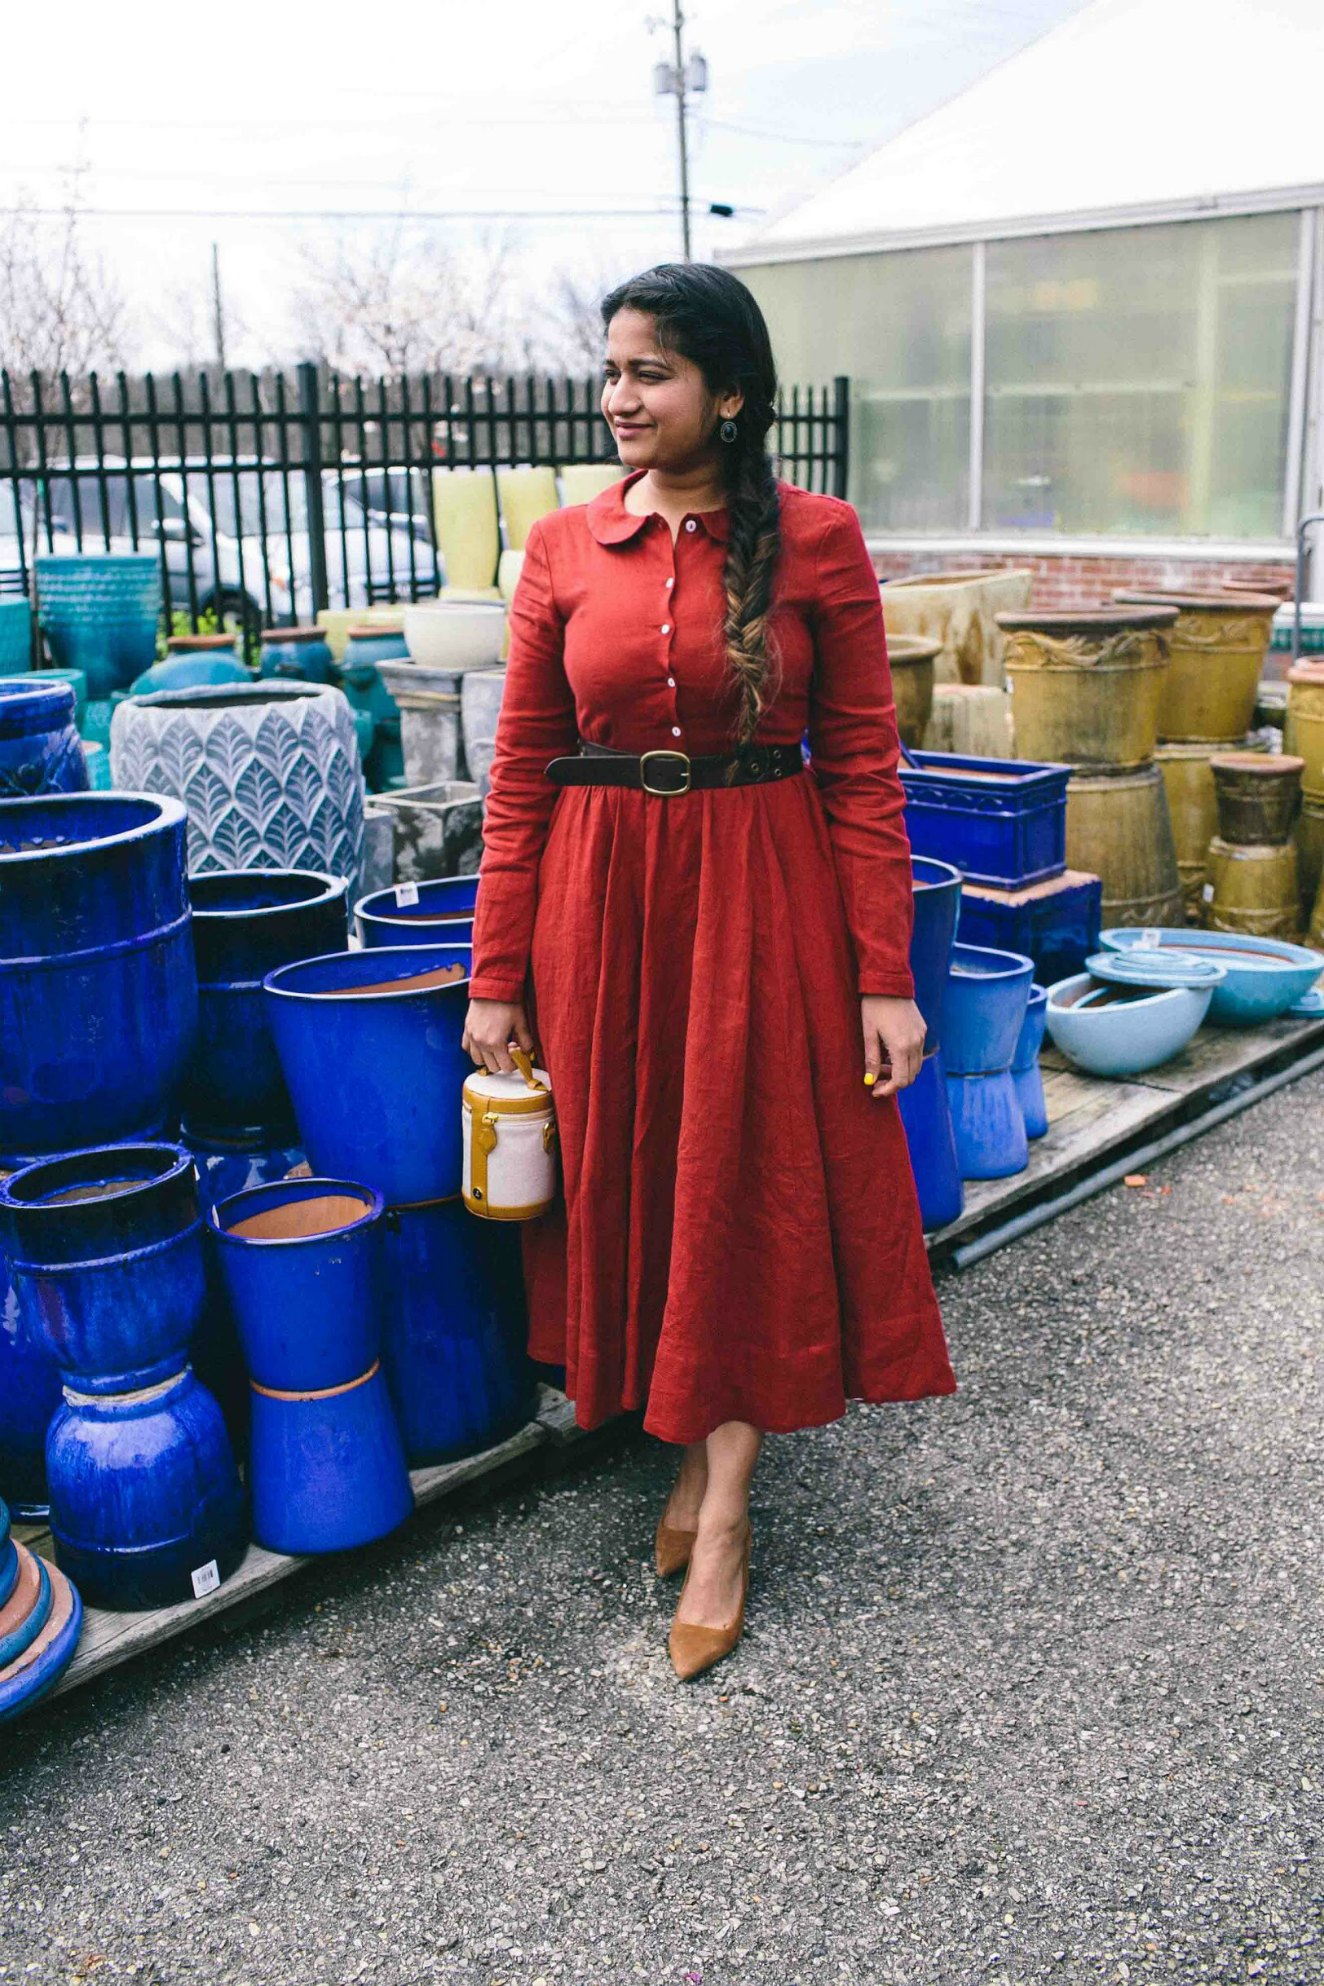 Modest Fashion and Lifestyle blog dreaming loud wearing parallel Crossbody Capsule - Son de Flor Classic Linen Dress styled by popular modest fashion blogger, Dreaming Loud.